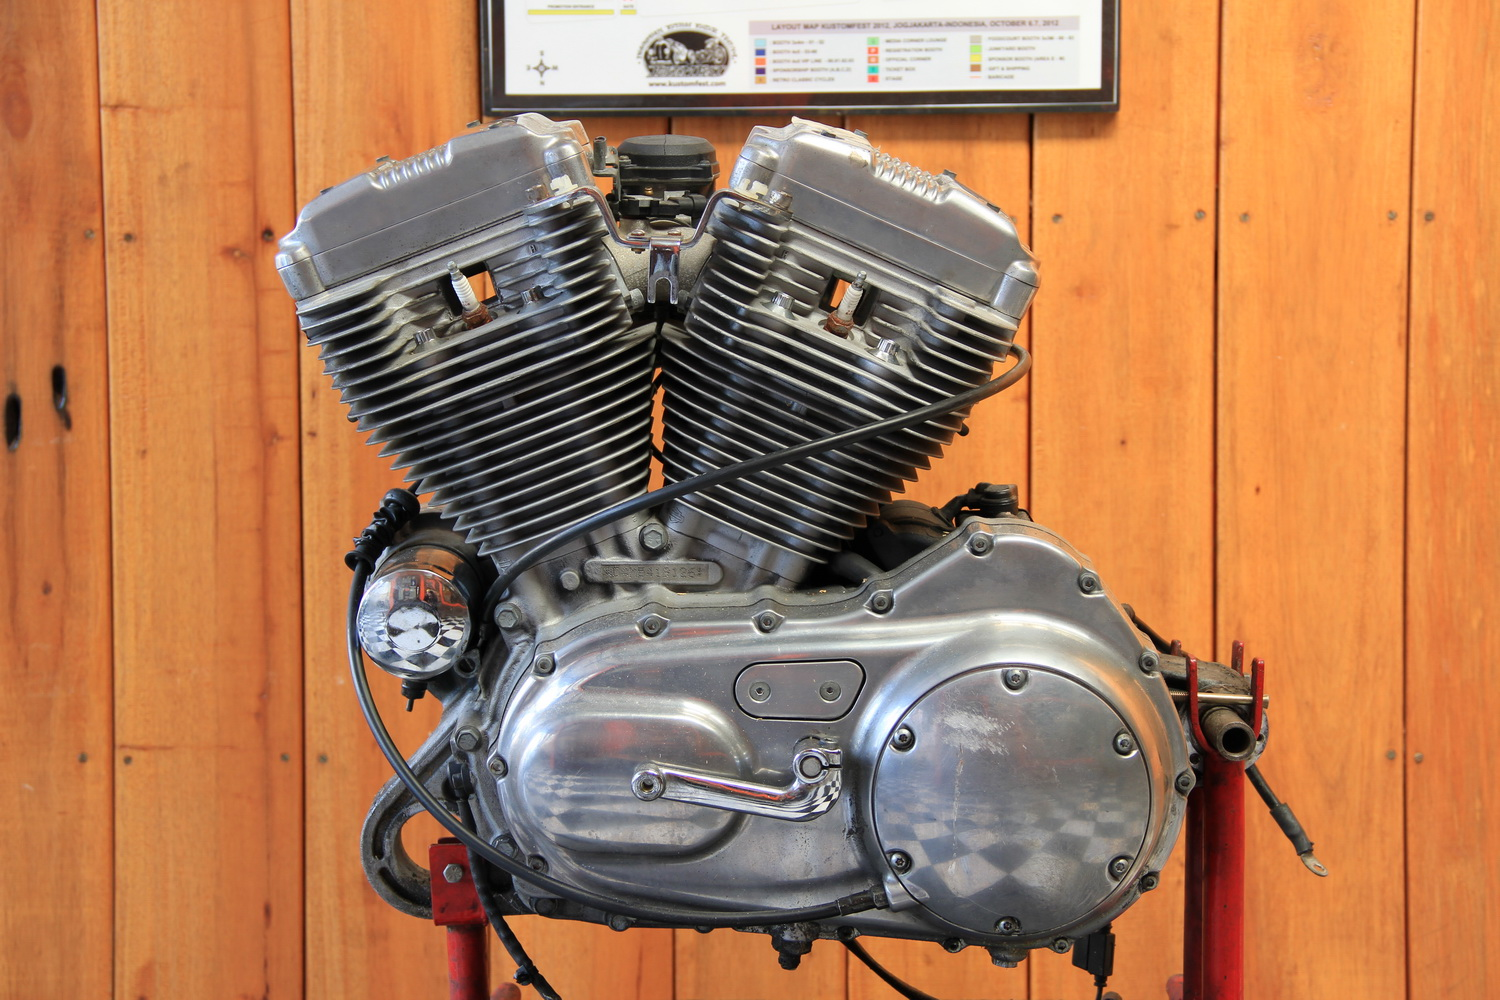 2003 Vw Jetta Owners Manual moreover 1968 Triumph Bonneville Motorcycle For Sale moreover 650 Triumph Motorcycle Wiring Diagram Free as well 1963 Triumph Bonneville Wiring Diagram in addition Triumph T120 Engine Diagram. on 1963 triumph bonneville wiring diagram